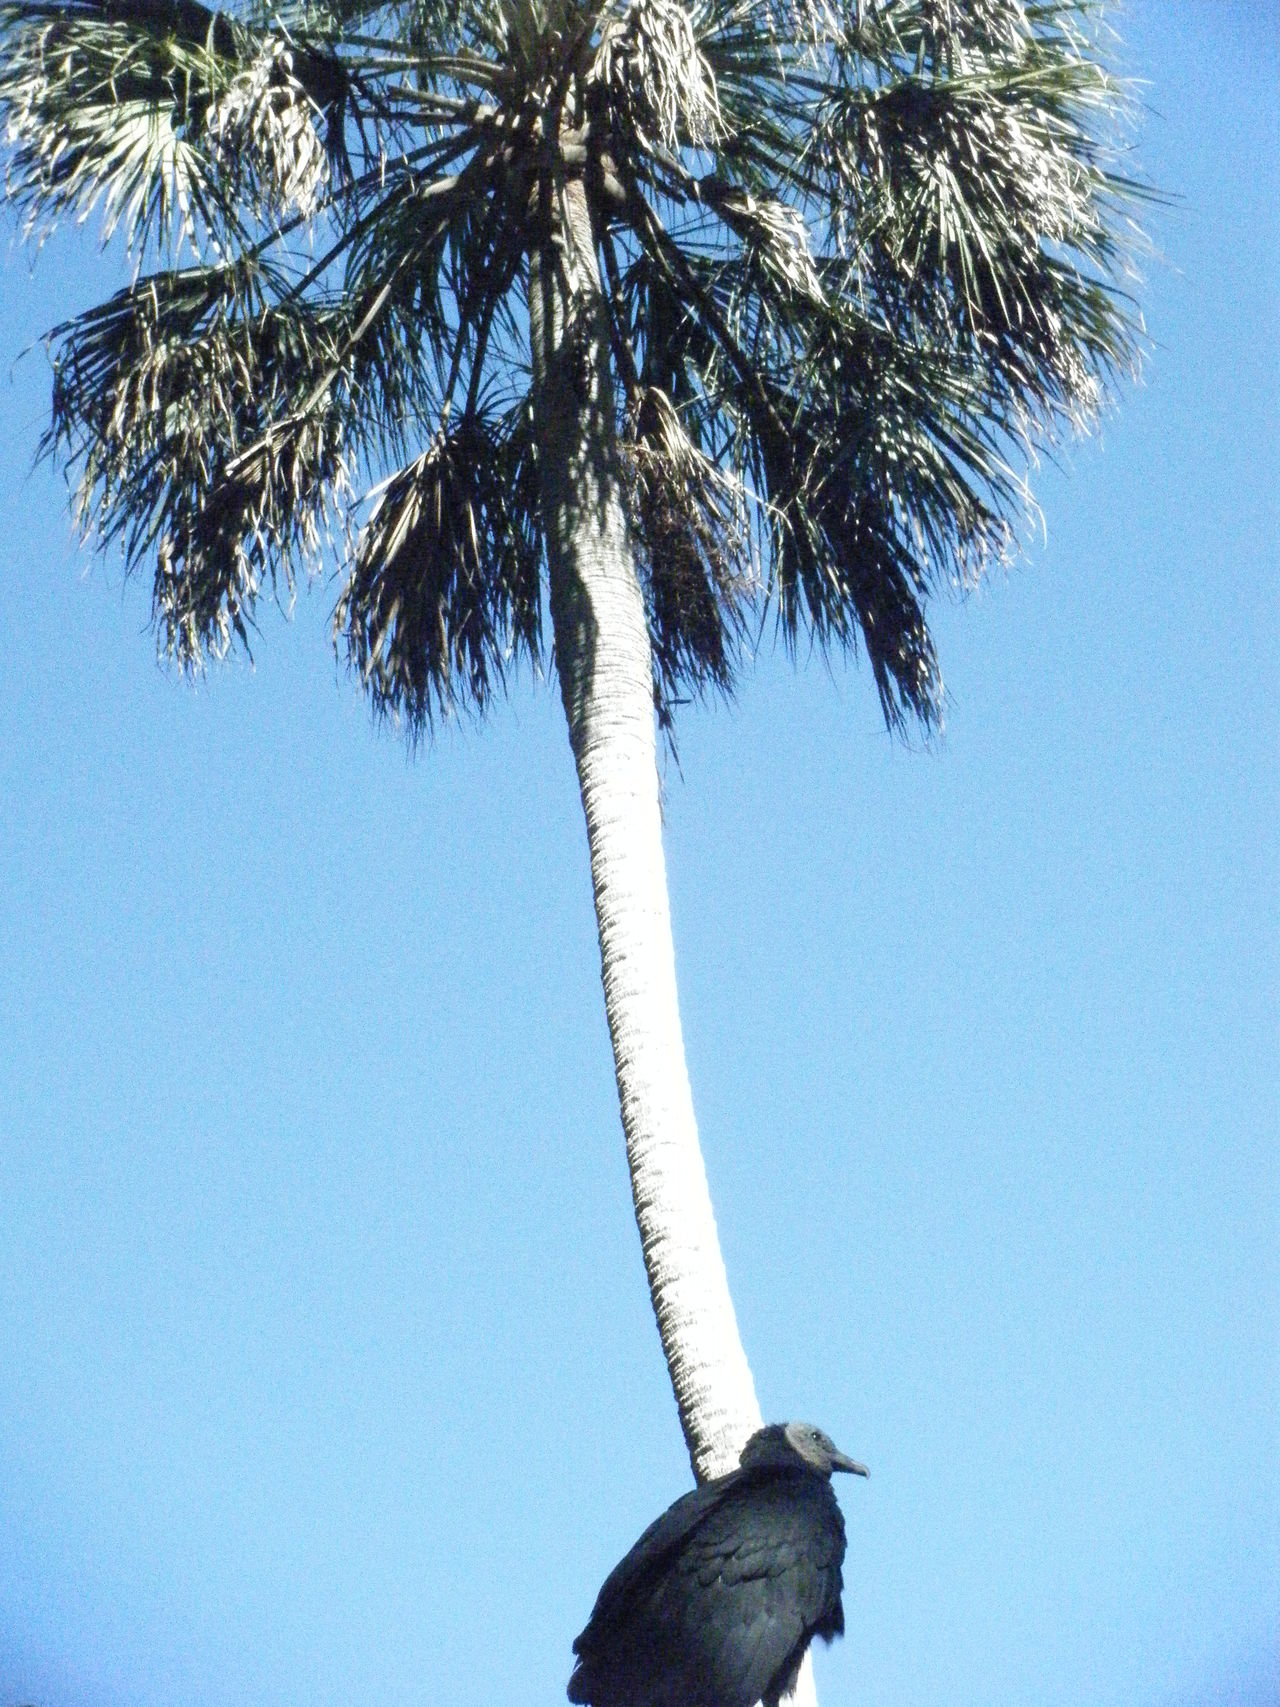 Tree Palm Tree Bird Grouse Sky Blue